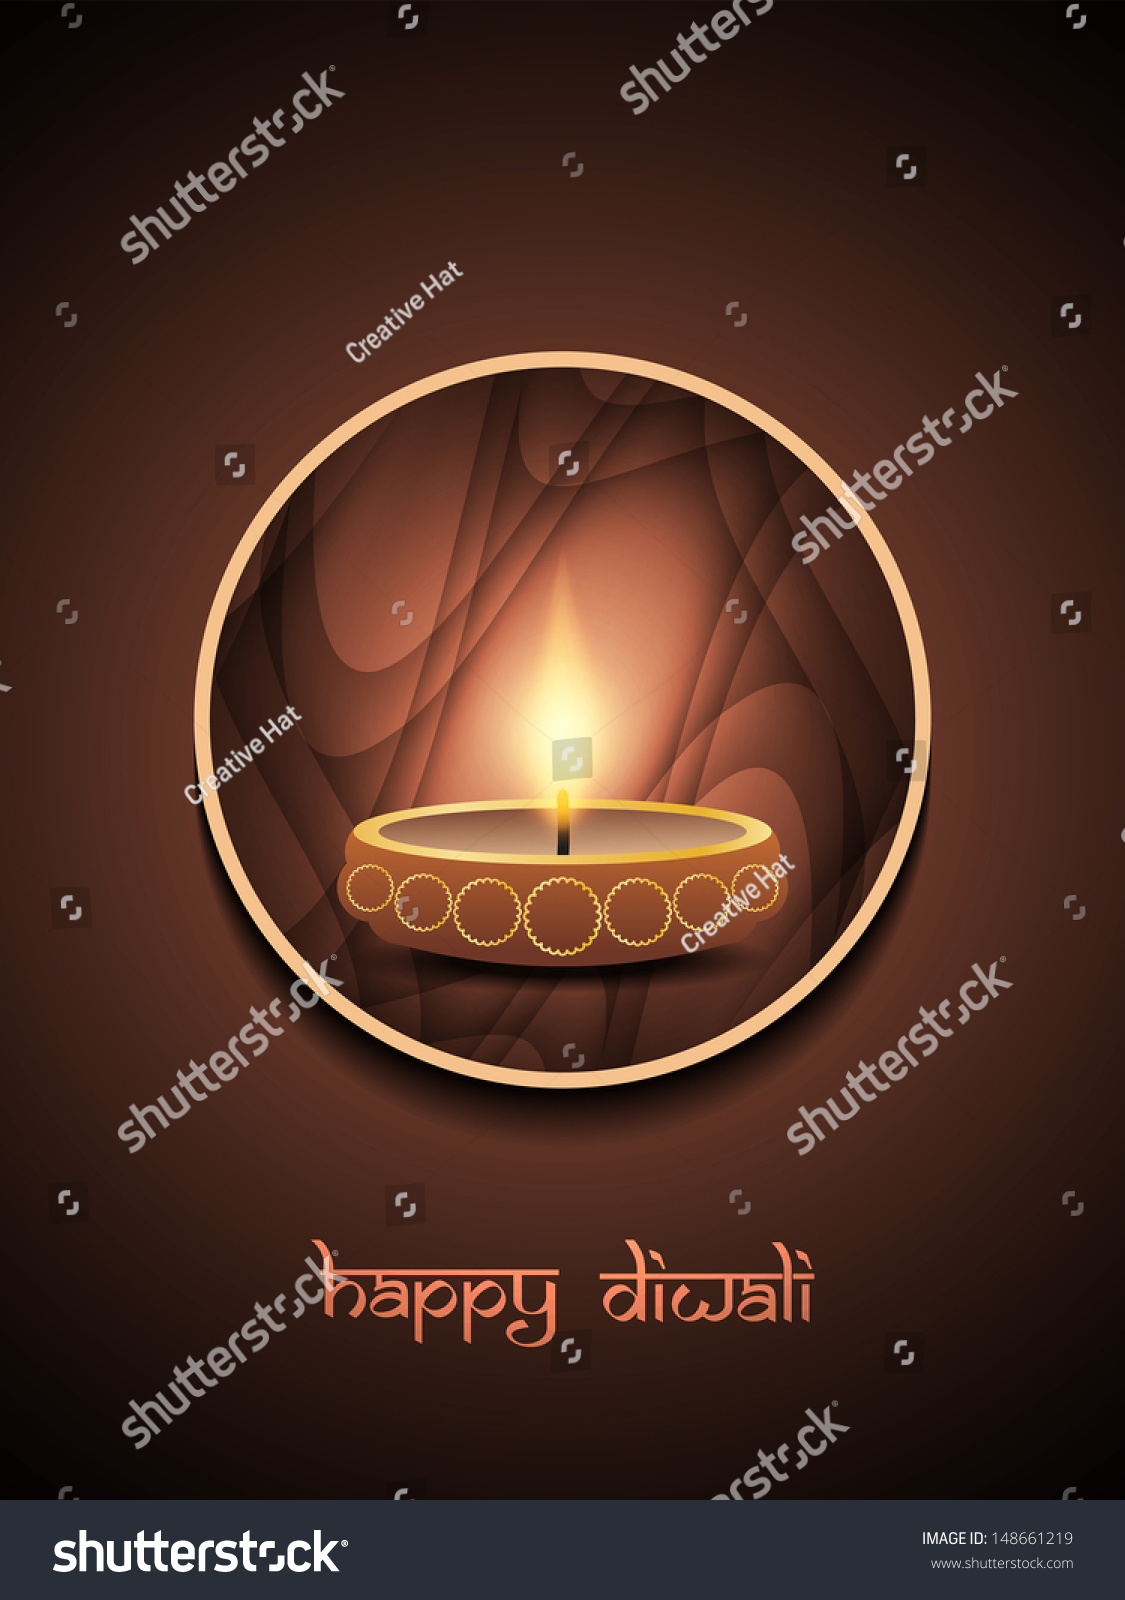 religious brown color background design for diwali festival with beautiful lamp in rounded frame